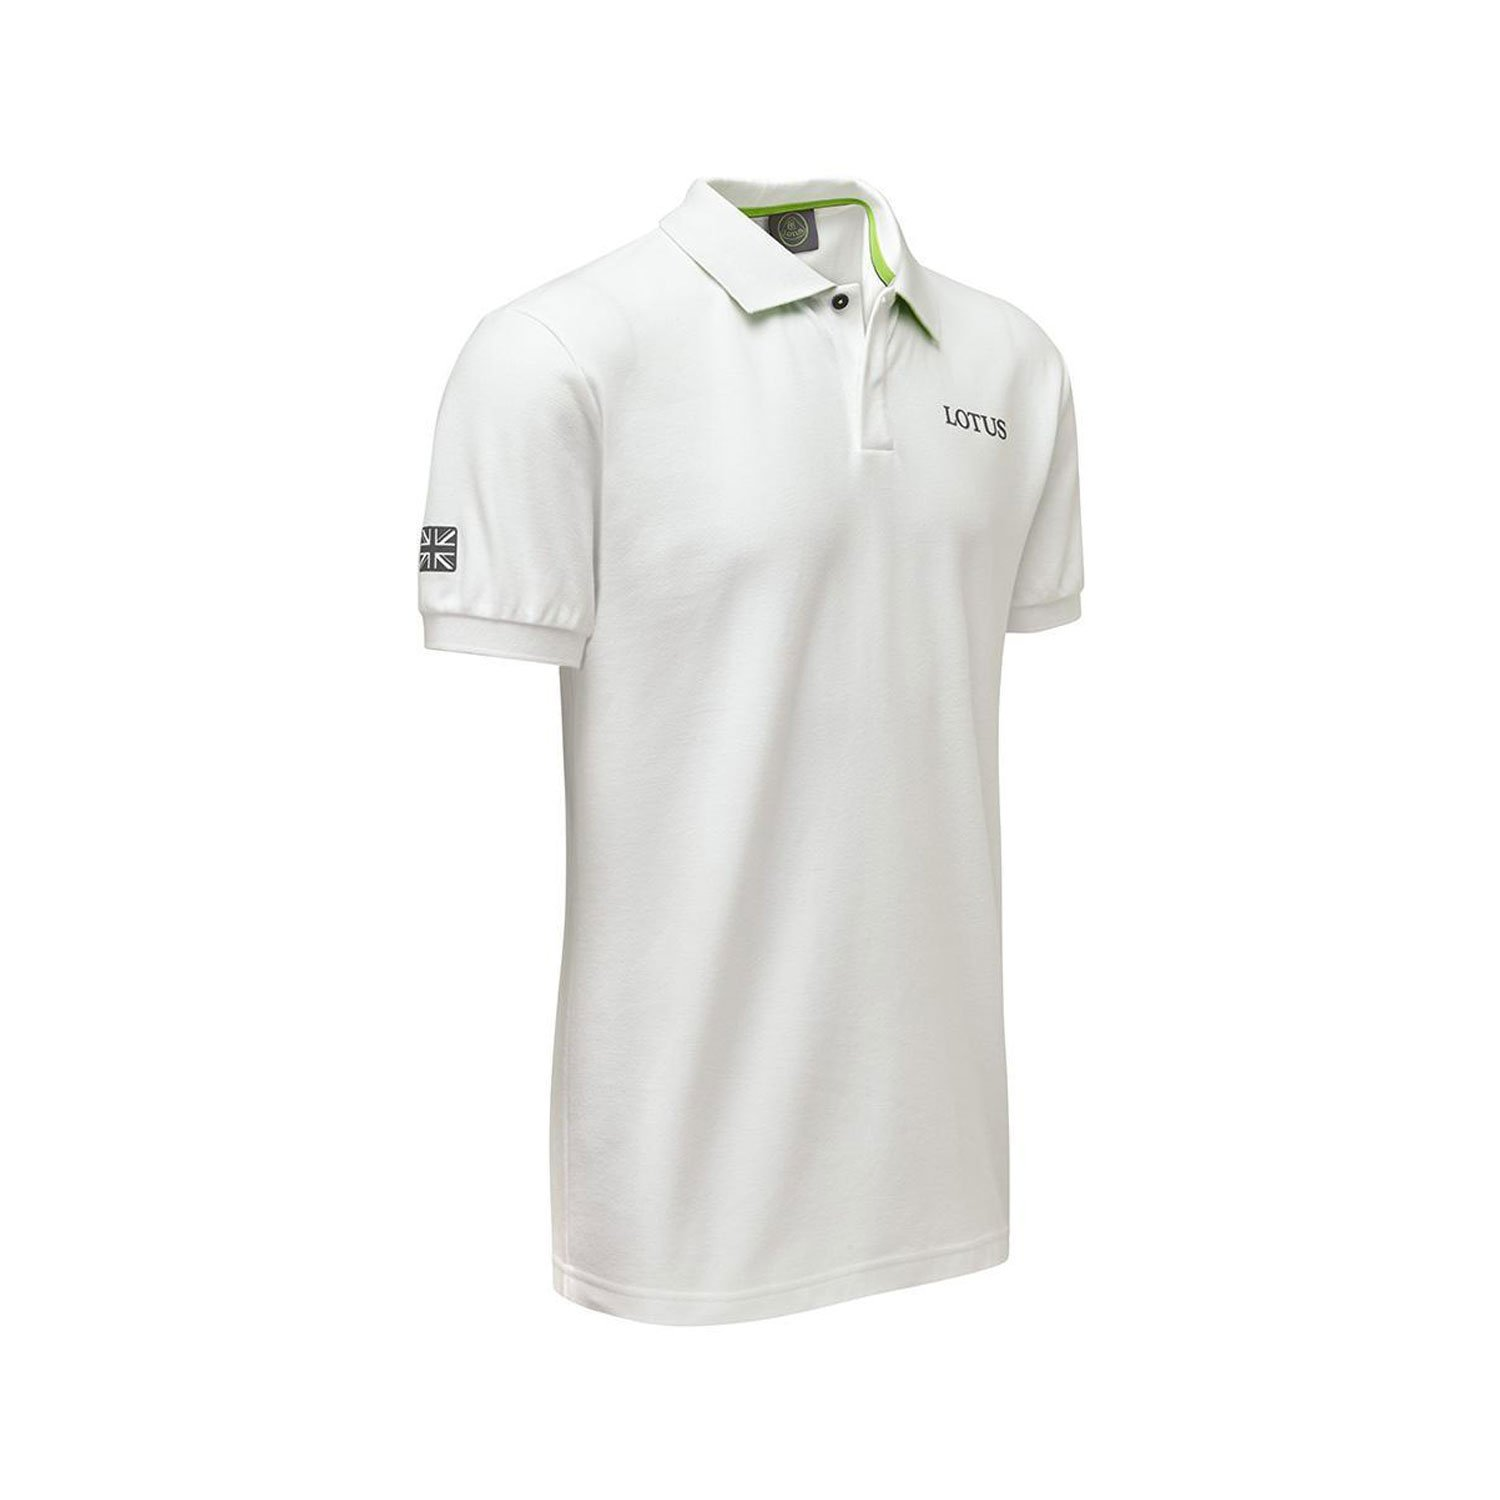 67f1c3cd Design Polo Shirts Online Uk - DREAMWORKS